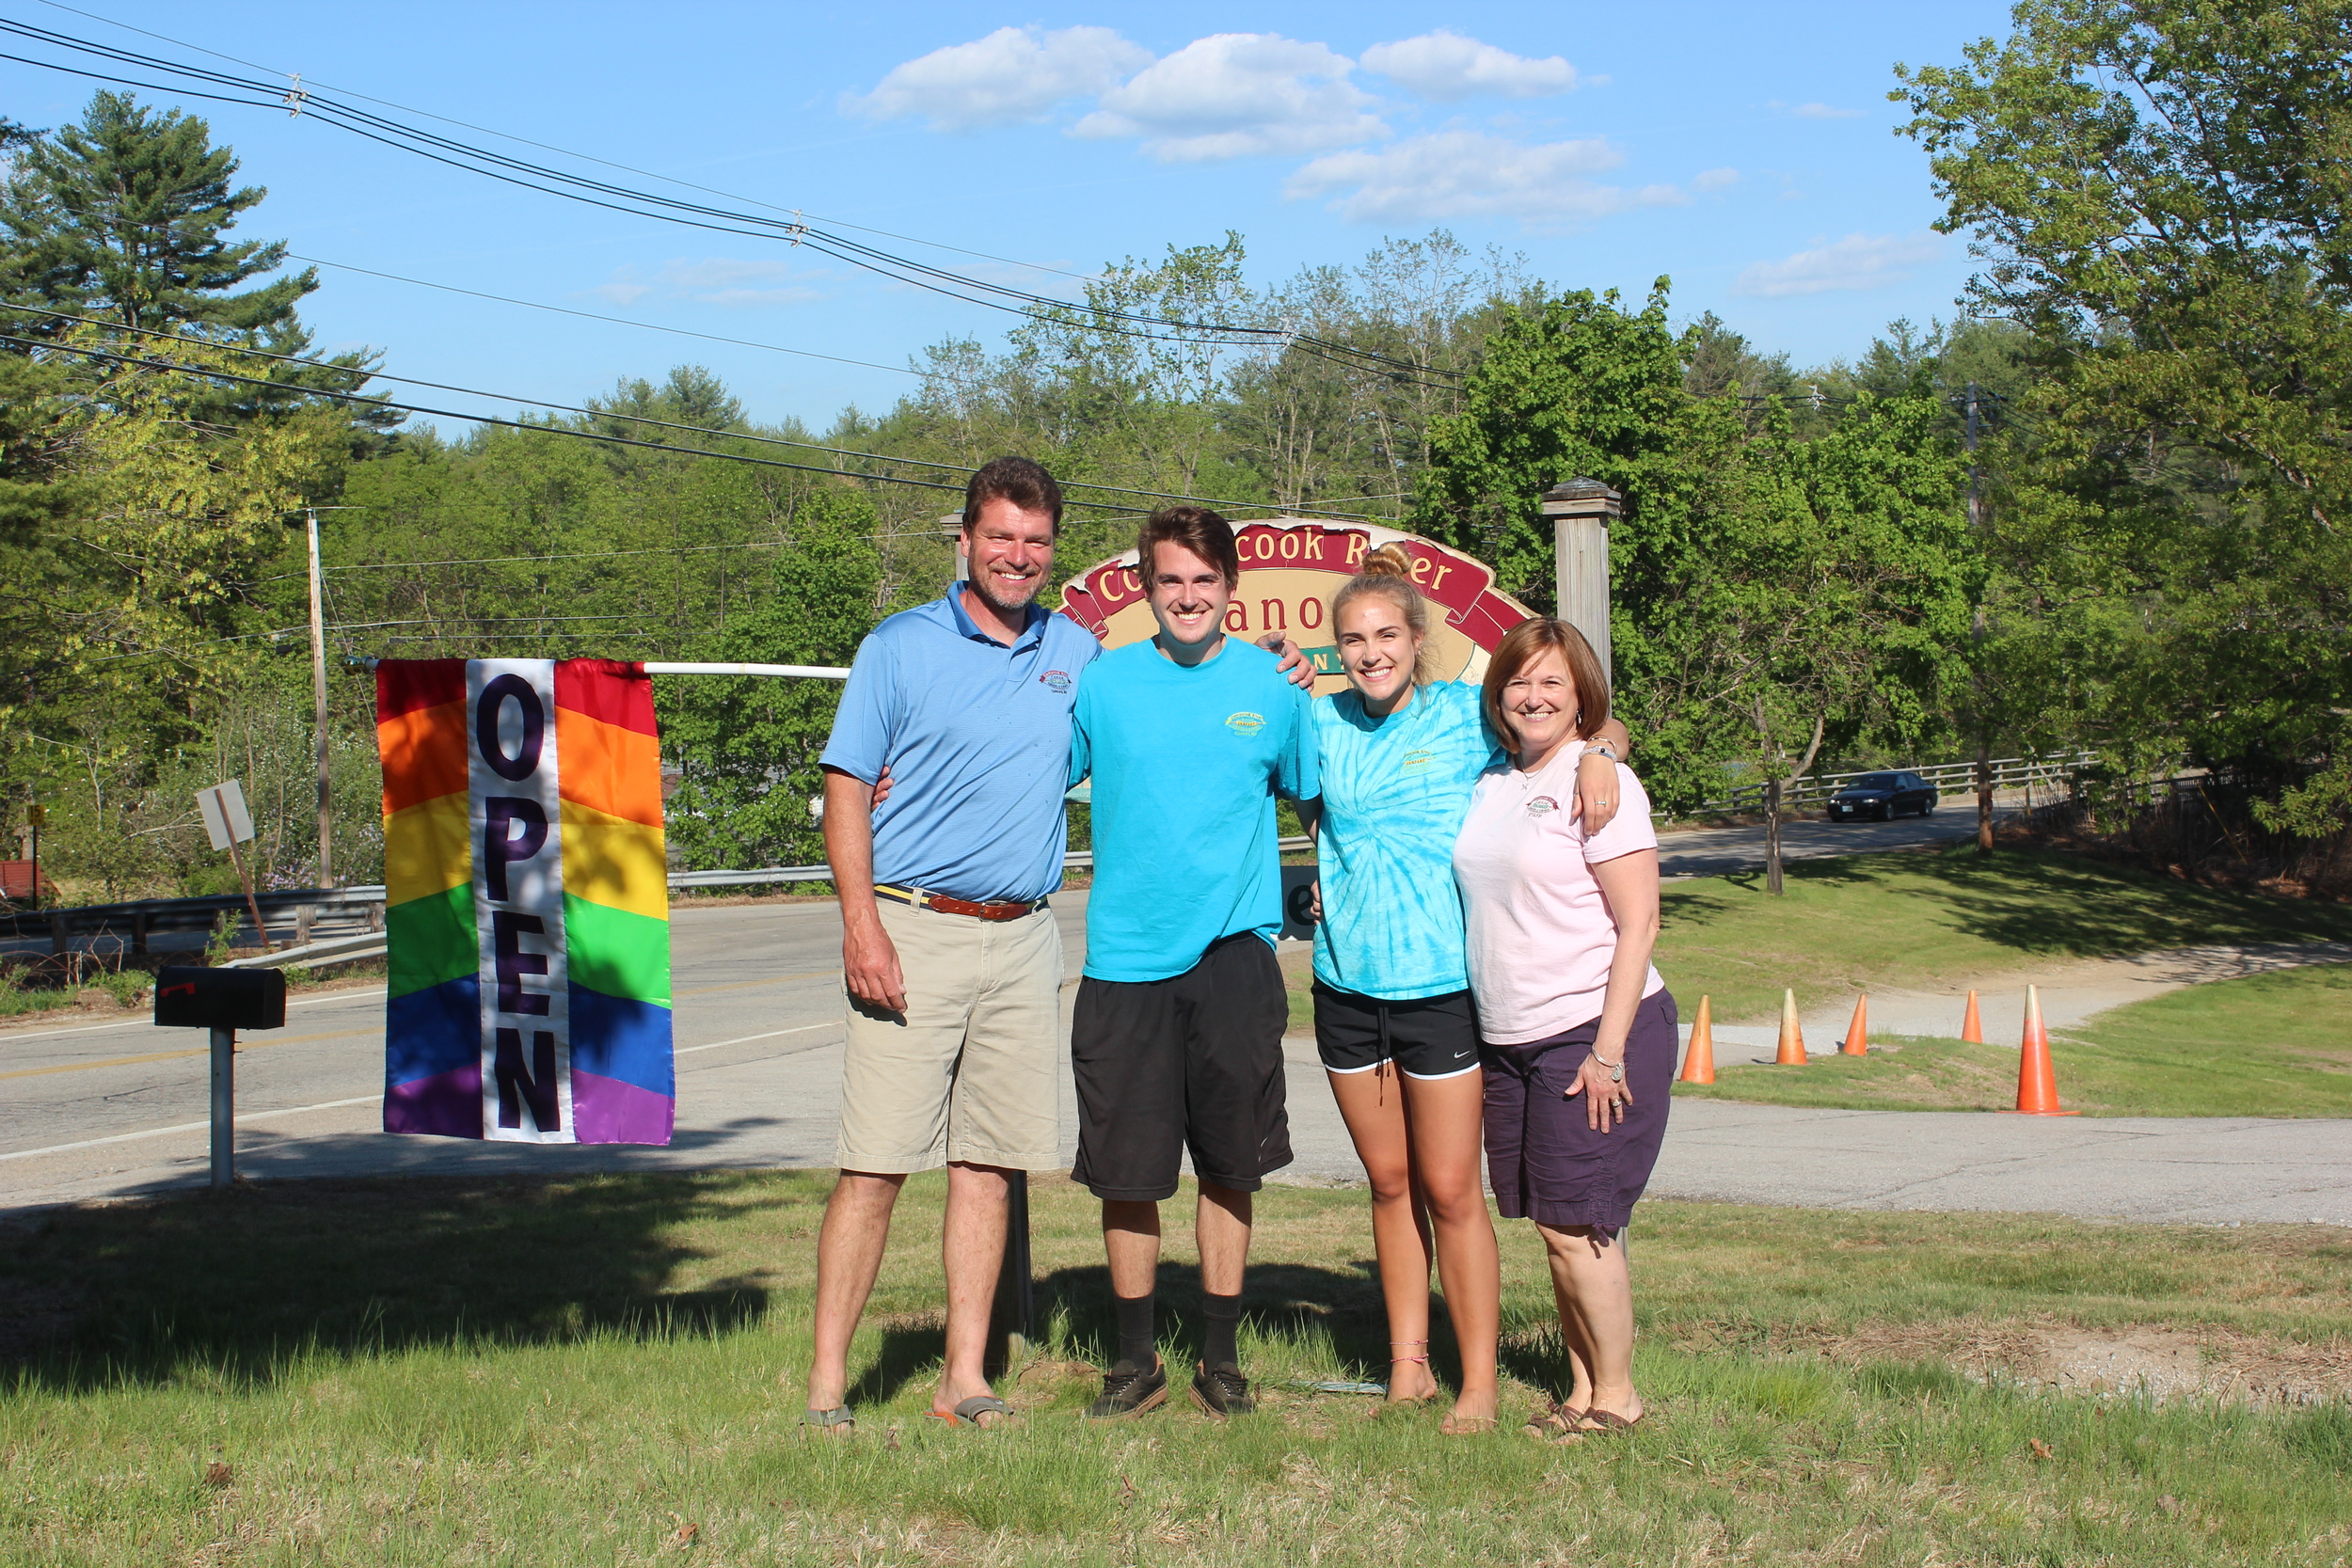 The Malfait Family.From left to right: Pat, Ryan, Jess and Lisa